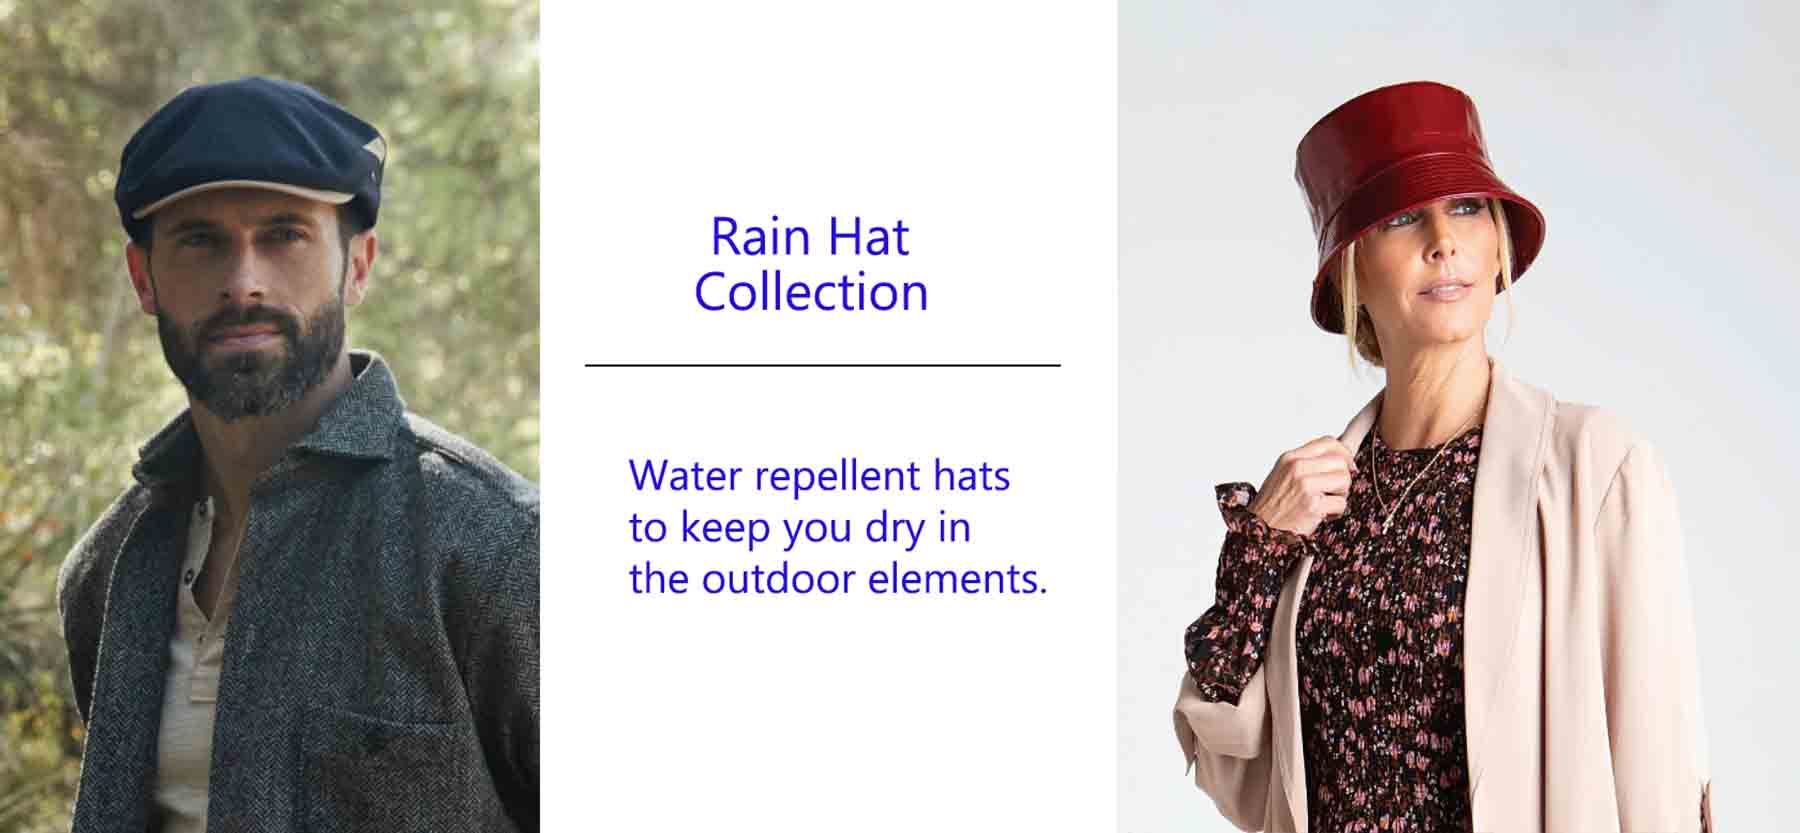 rain hats for men and women. water repellent hats designed to keep you dry in the outdoor elements.